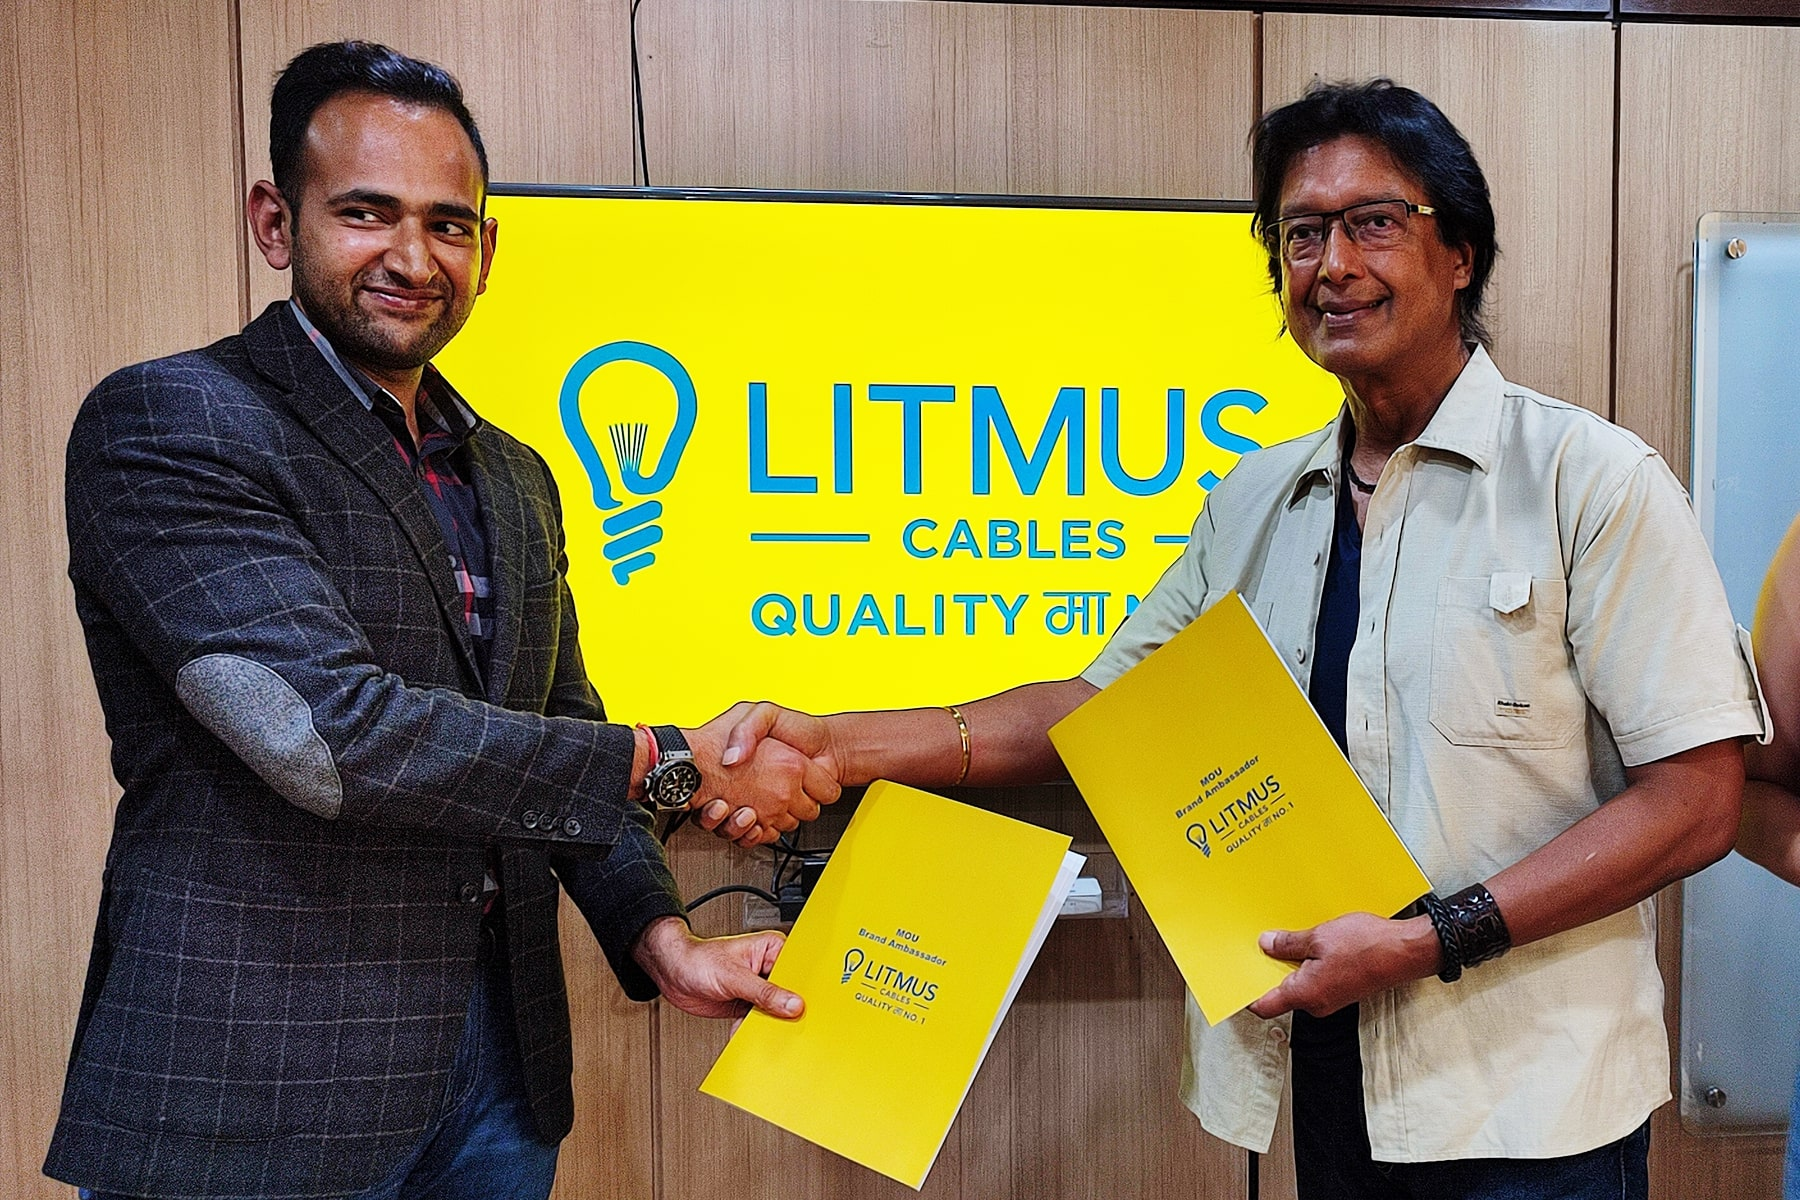 Litmus cables appoints Superstar Rajesh Hamal and his spouse Madhu as its brand ambassadors